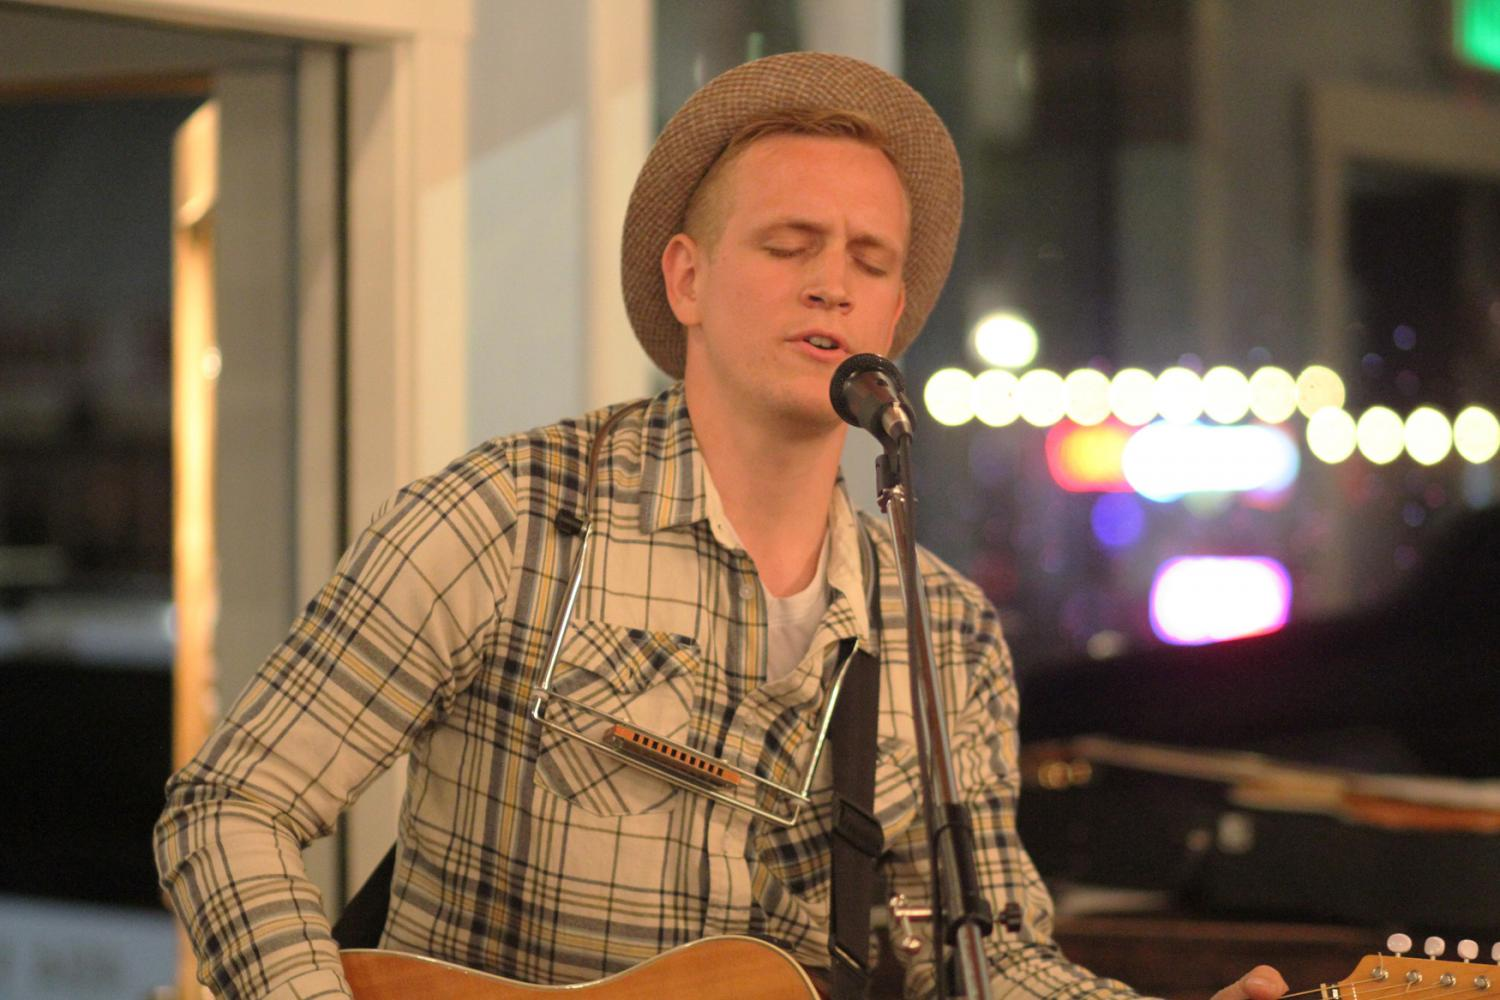 Michael Boucher performing a cover at The Mason Jar's open mic night